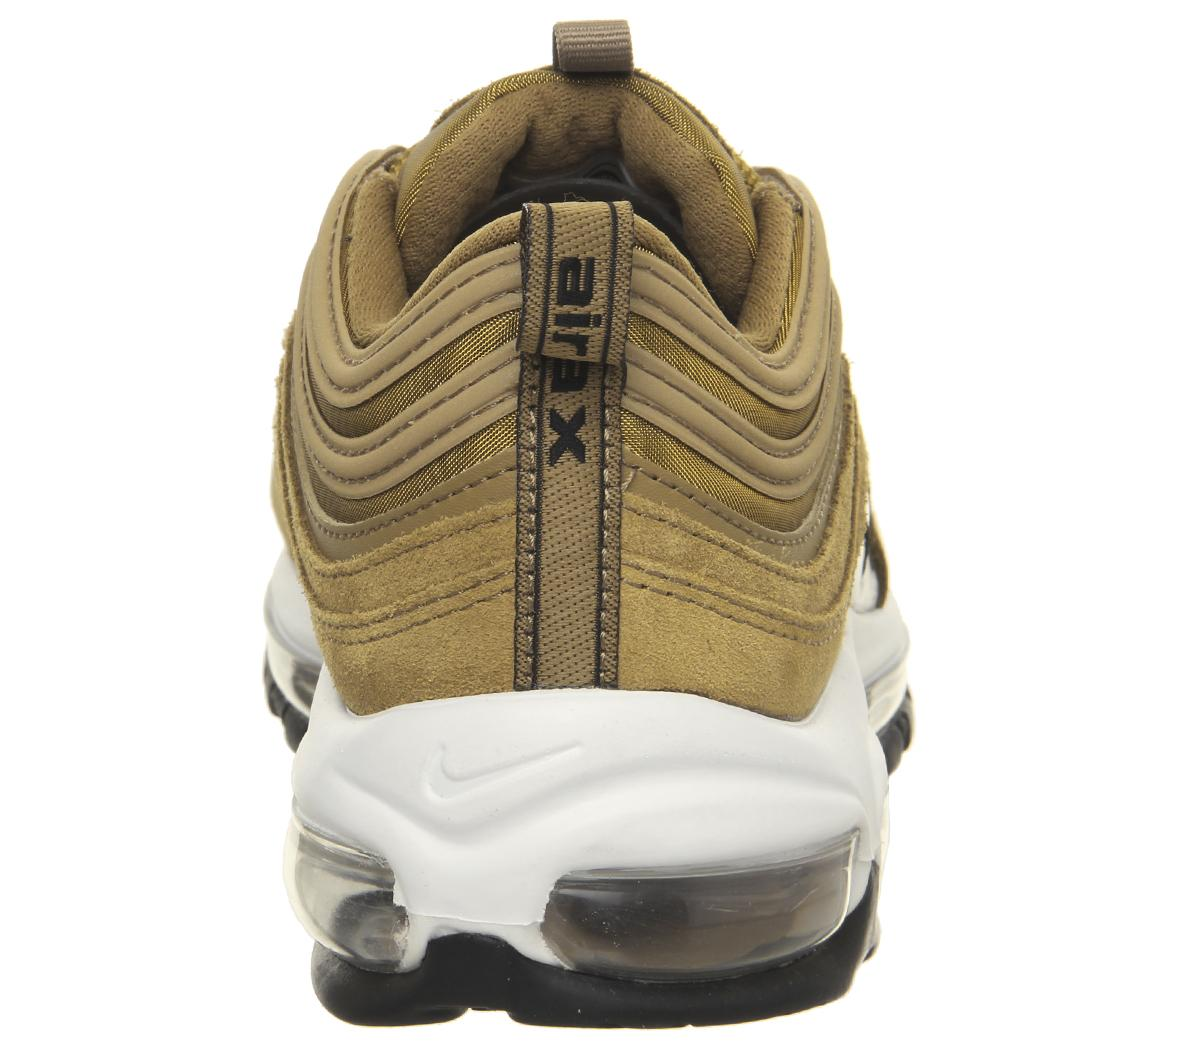 Nike Air Max 97 Monarch Gel - Hers trainers